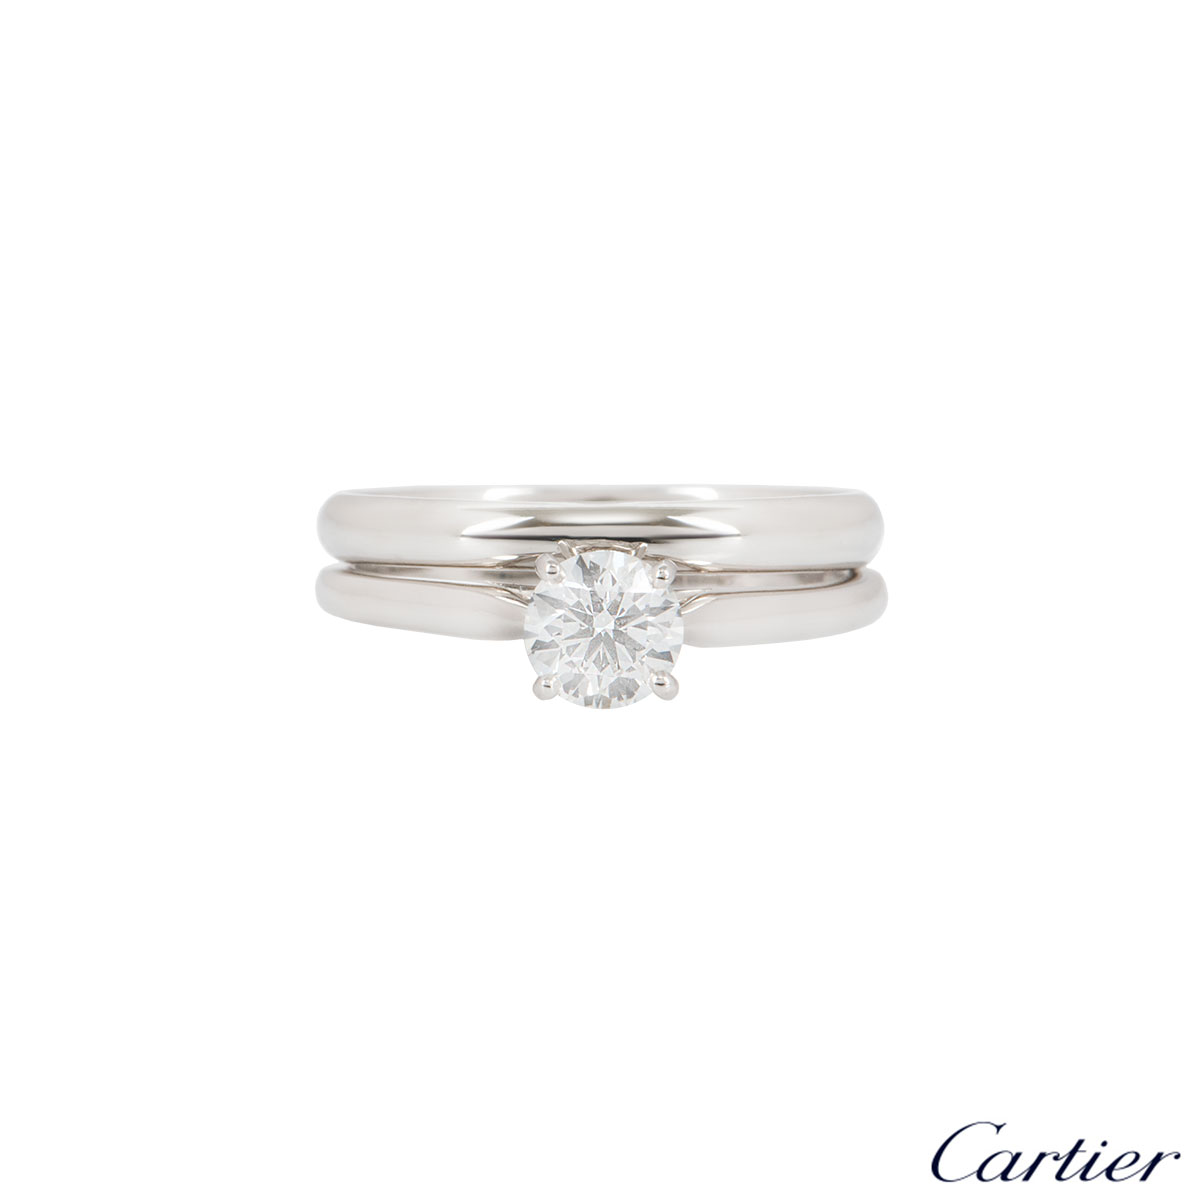 Cartier Platinum Diamond 1895 Solitaire Ring 0.50ct G/VS1 With Plain Wedding Band